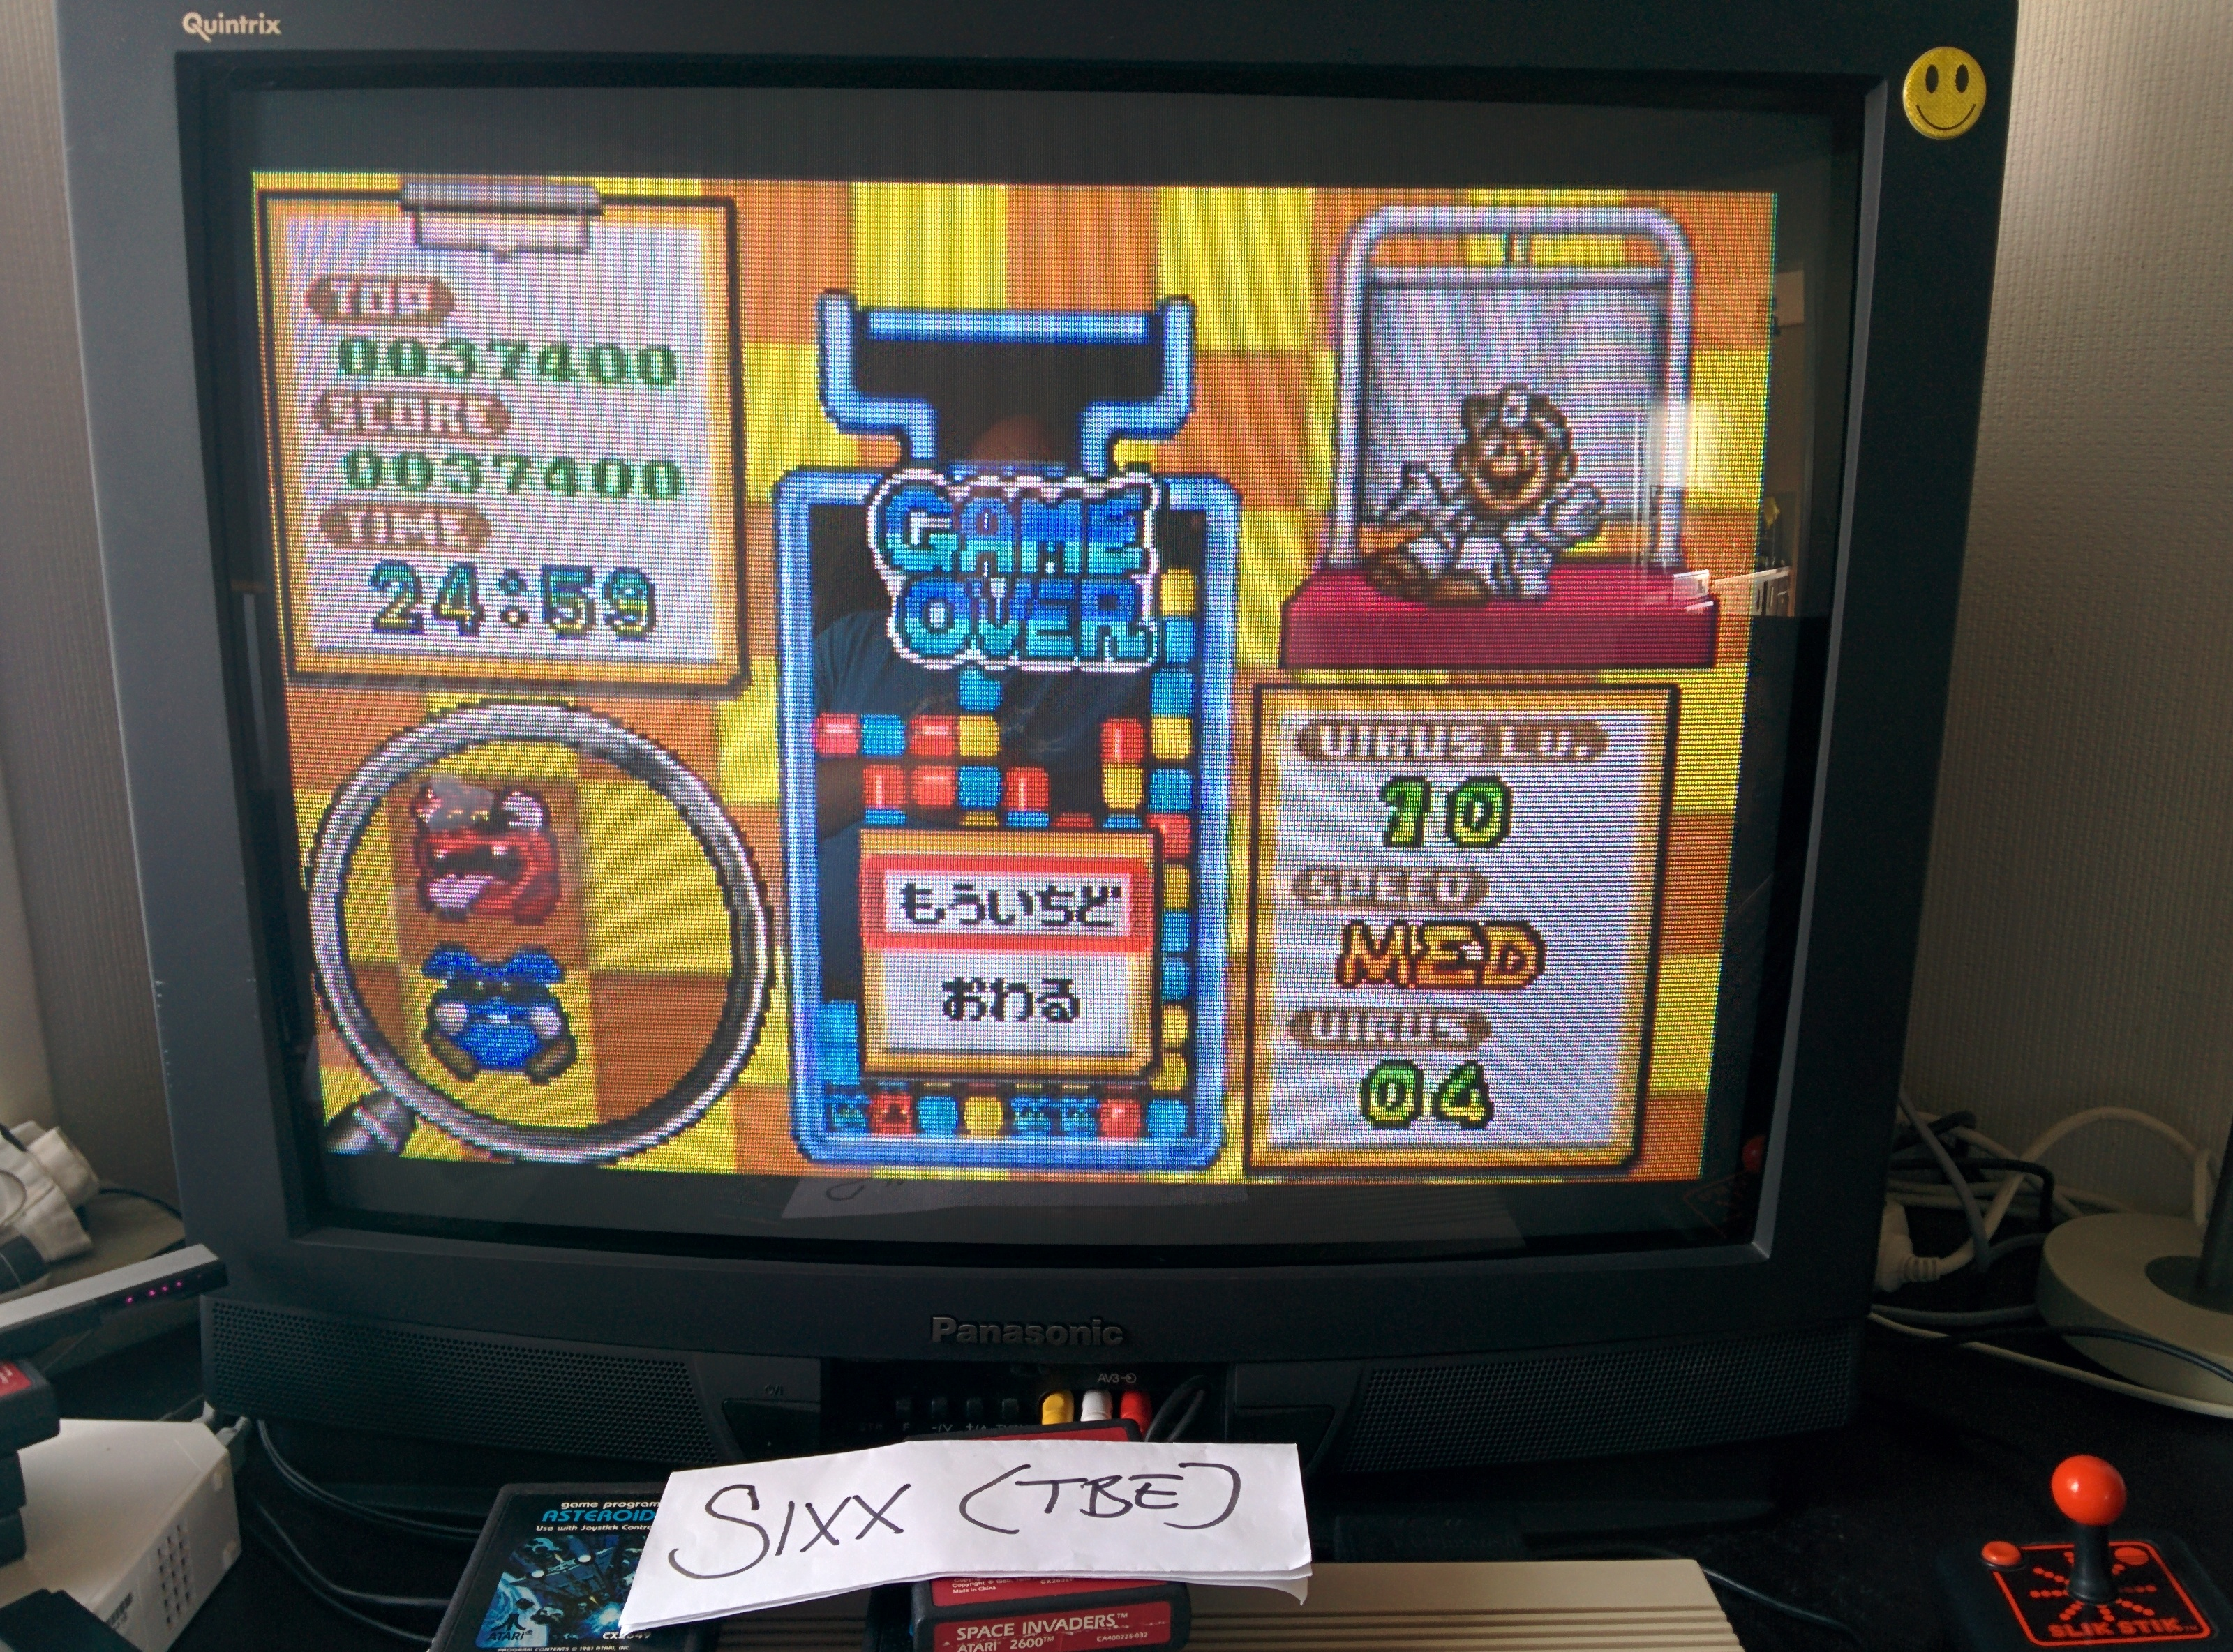 Sixx: Dr. Mario: Level 00 [Med] (GBA Emulated) 37,400 points on 2014-07-17 08:38:34